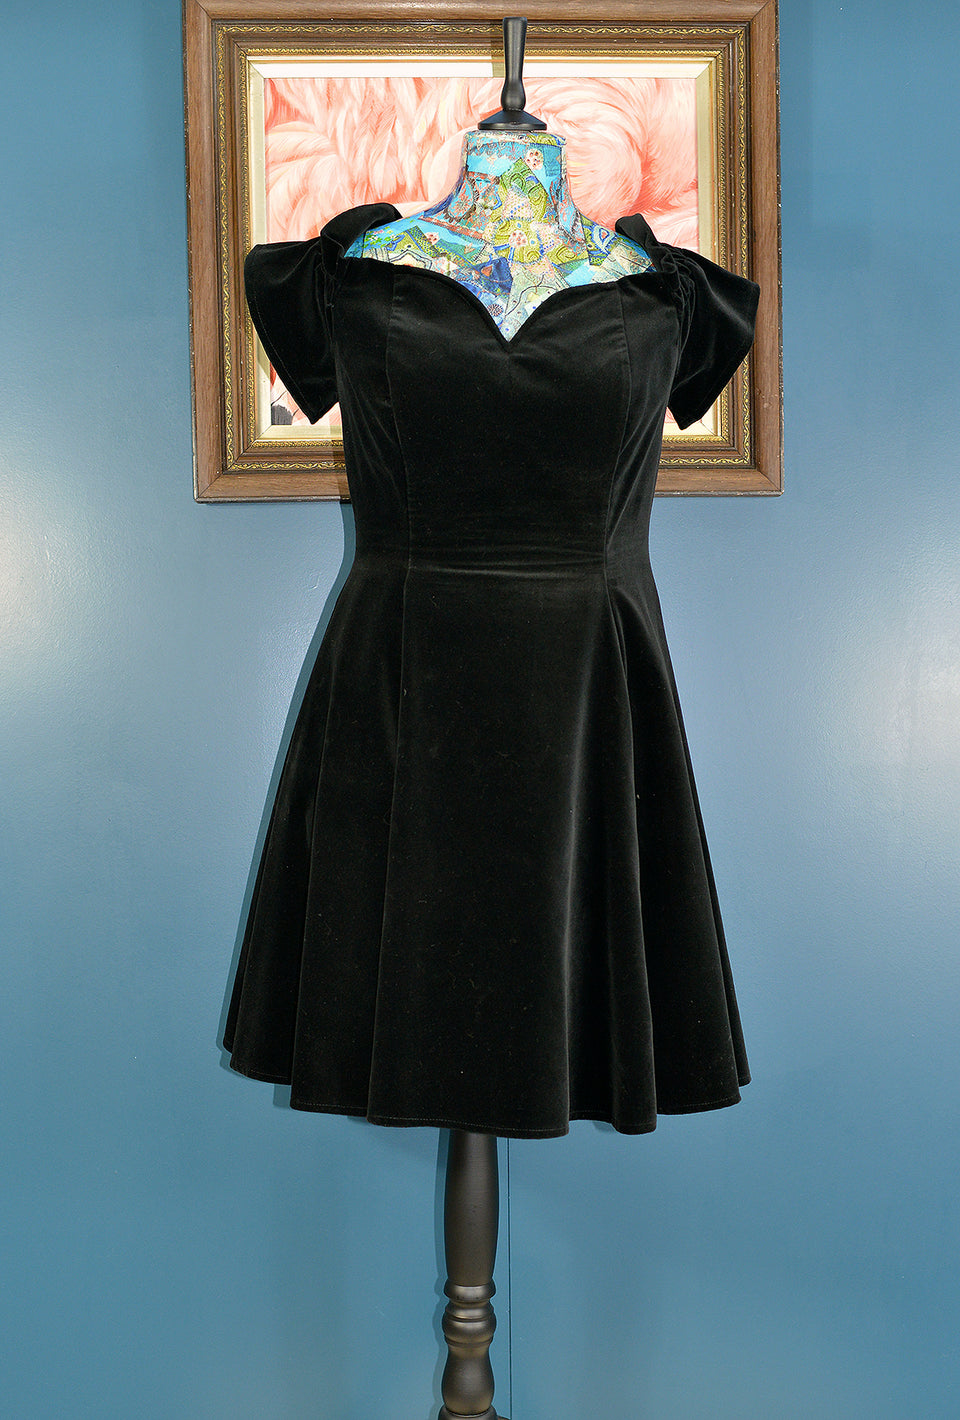 CLASSIC WOMAN Black Velvet Off-The-Shoulders Empire Midi Dress, Size 14. Pre-loved.